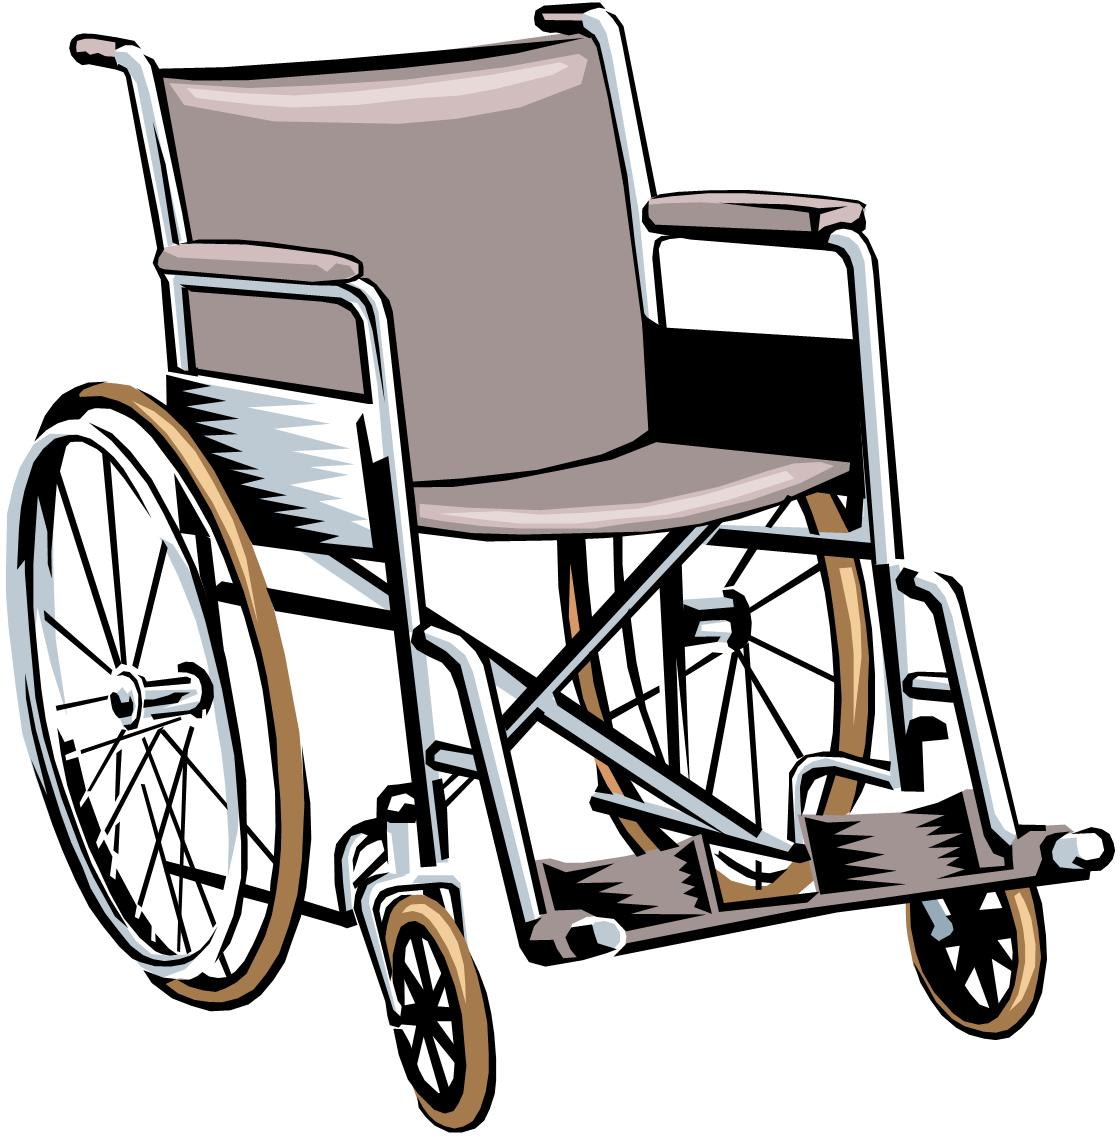 wheelchair emoji step2 table and chairs with umbrella free clipart pictures clipartix